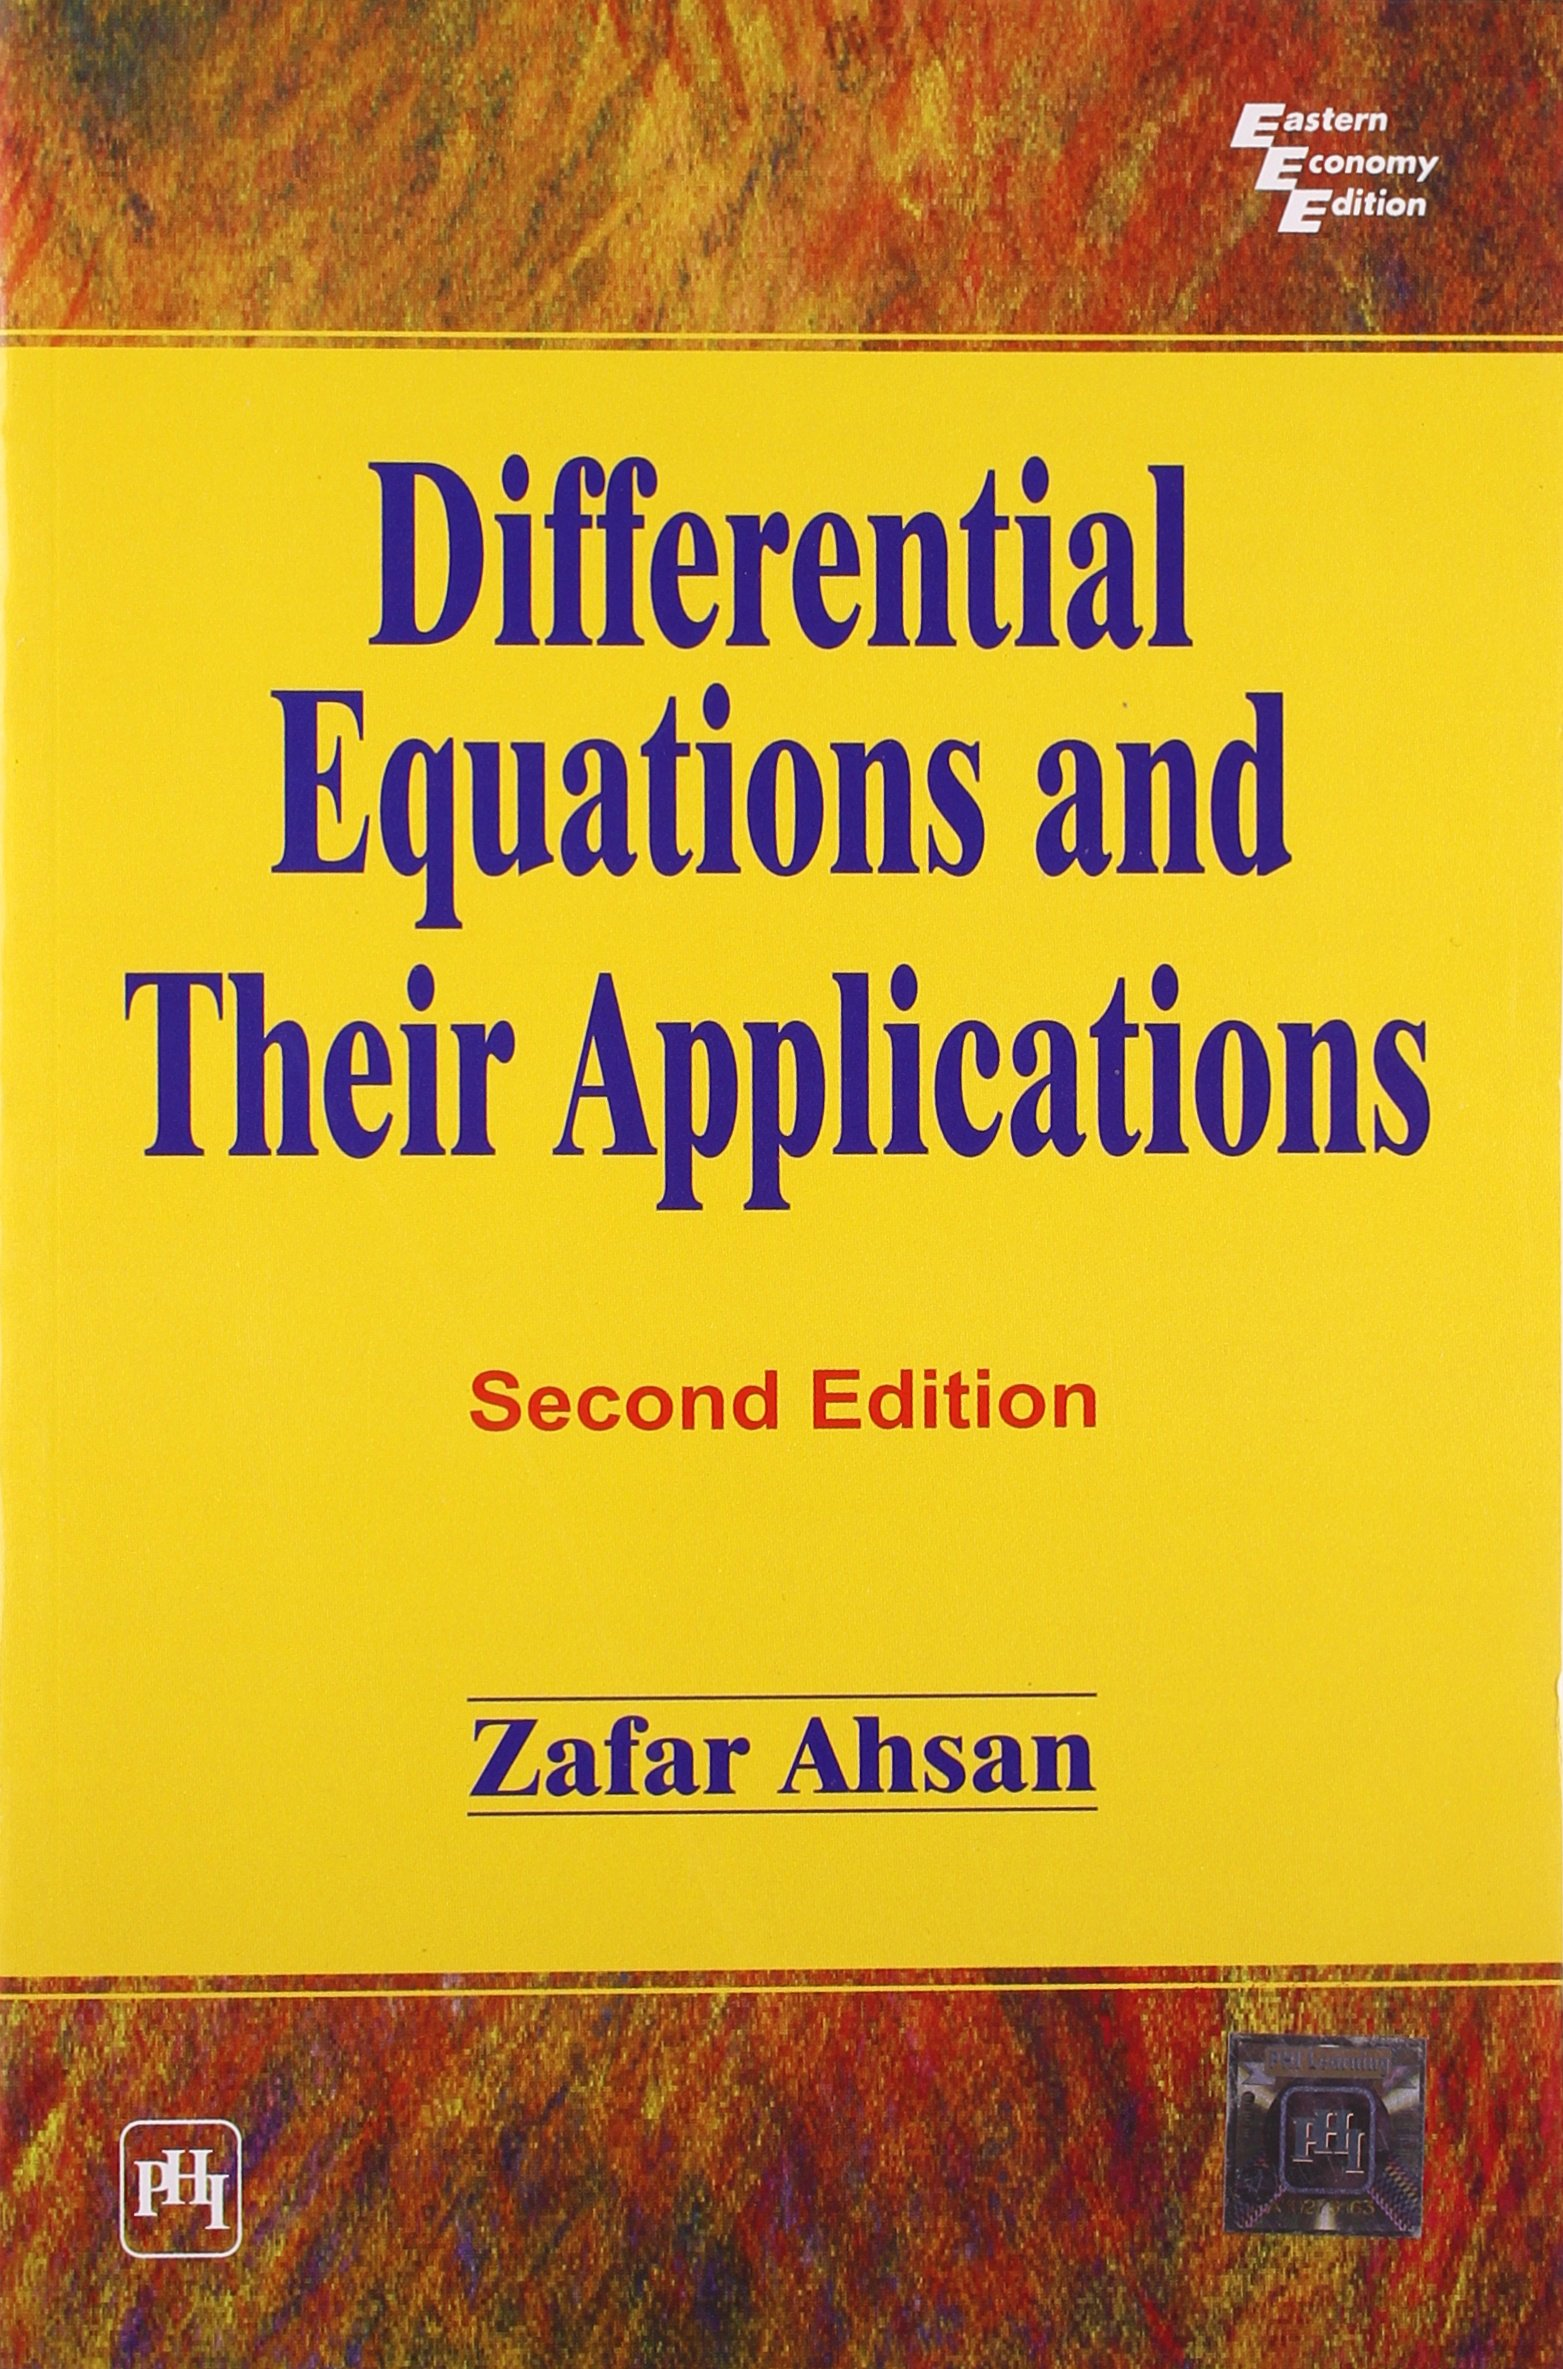 Differential Equations and Their Applications - An ...